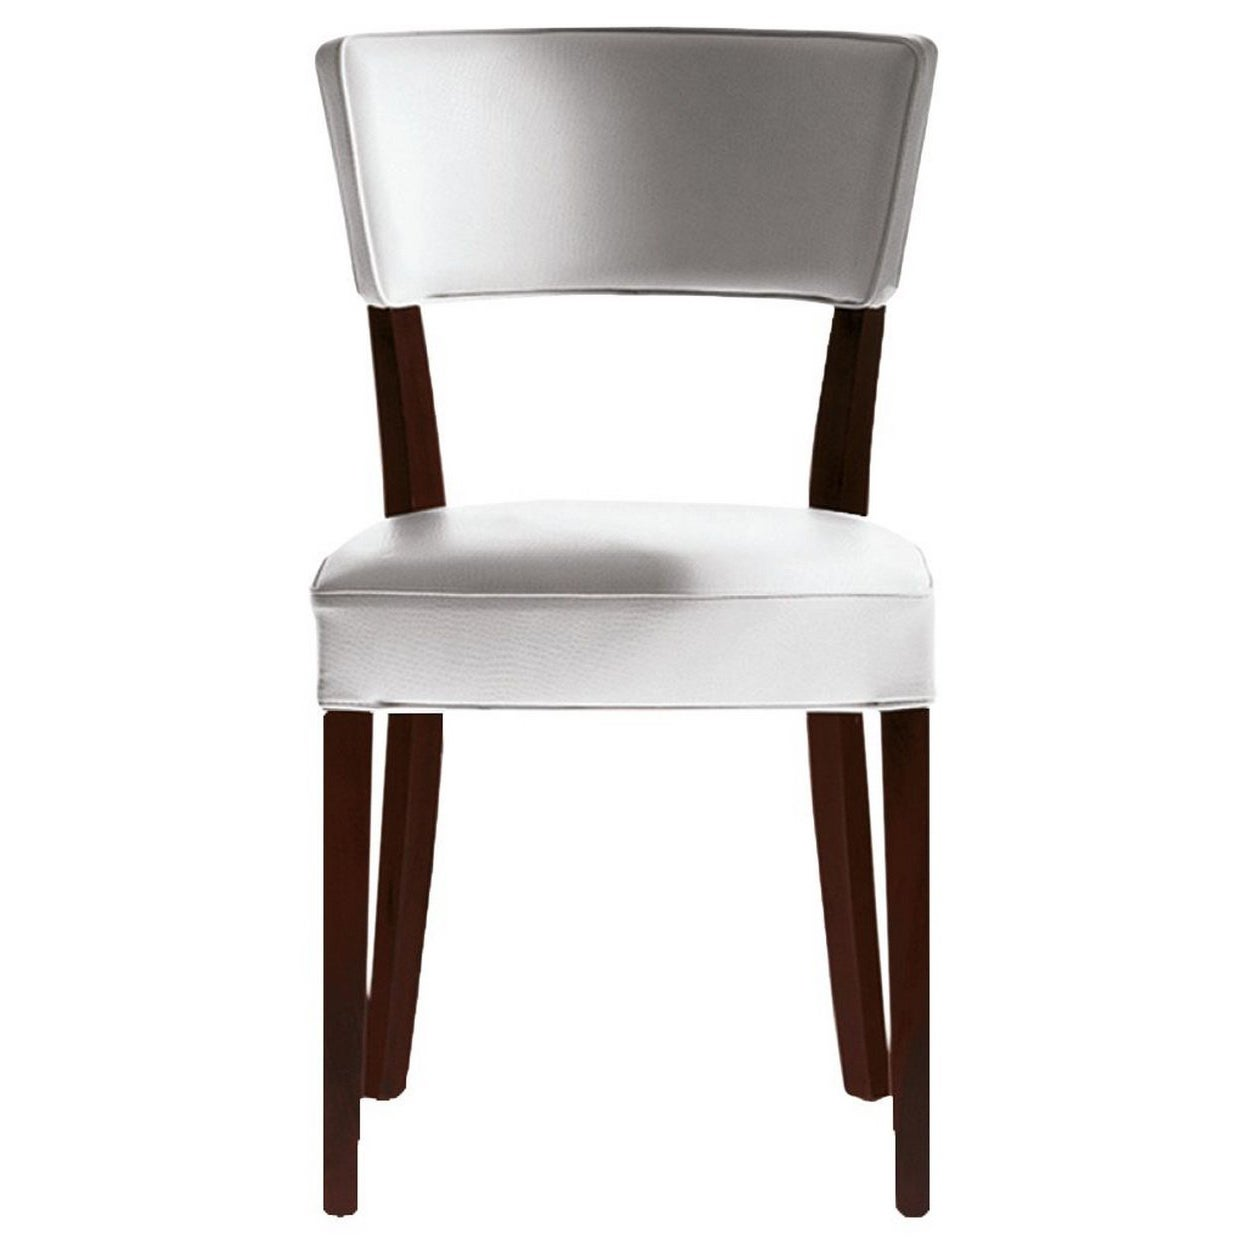 """""""Neoz"""" Dining White Chair in Mahogany Designed by Philippe Starck for Driade"""